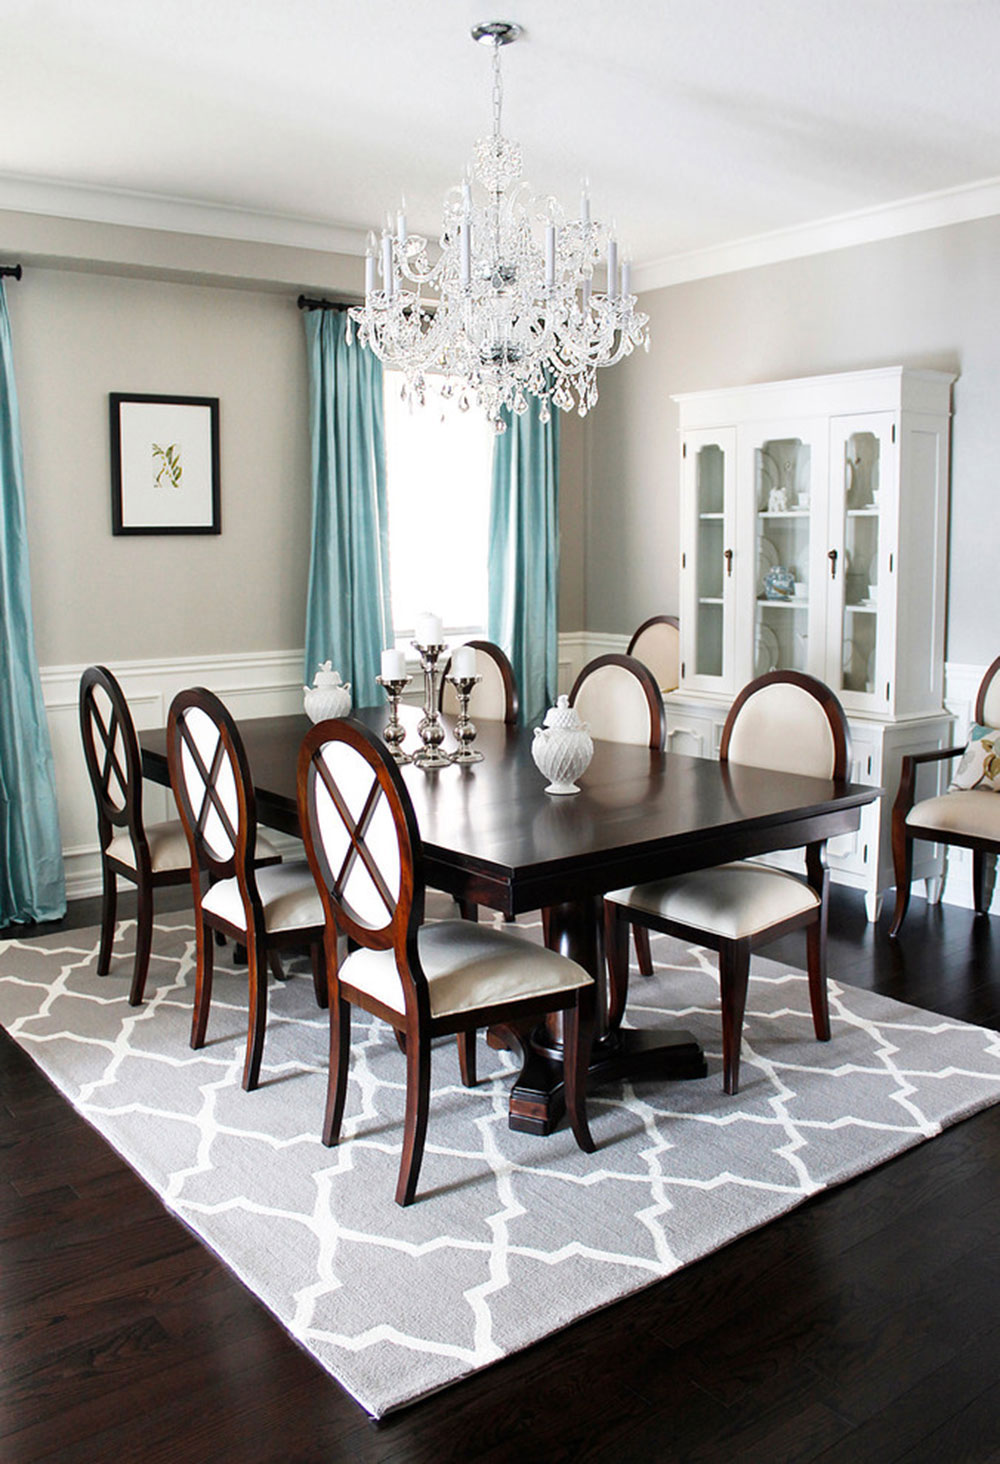 Dining Room Crystal Chandeliers Select The Perfect Dining Room